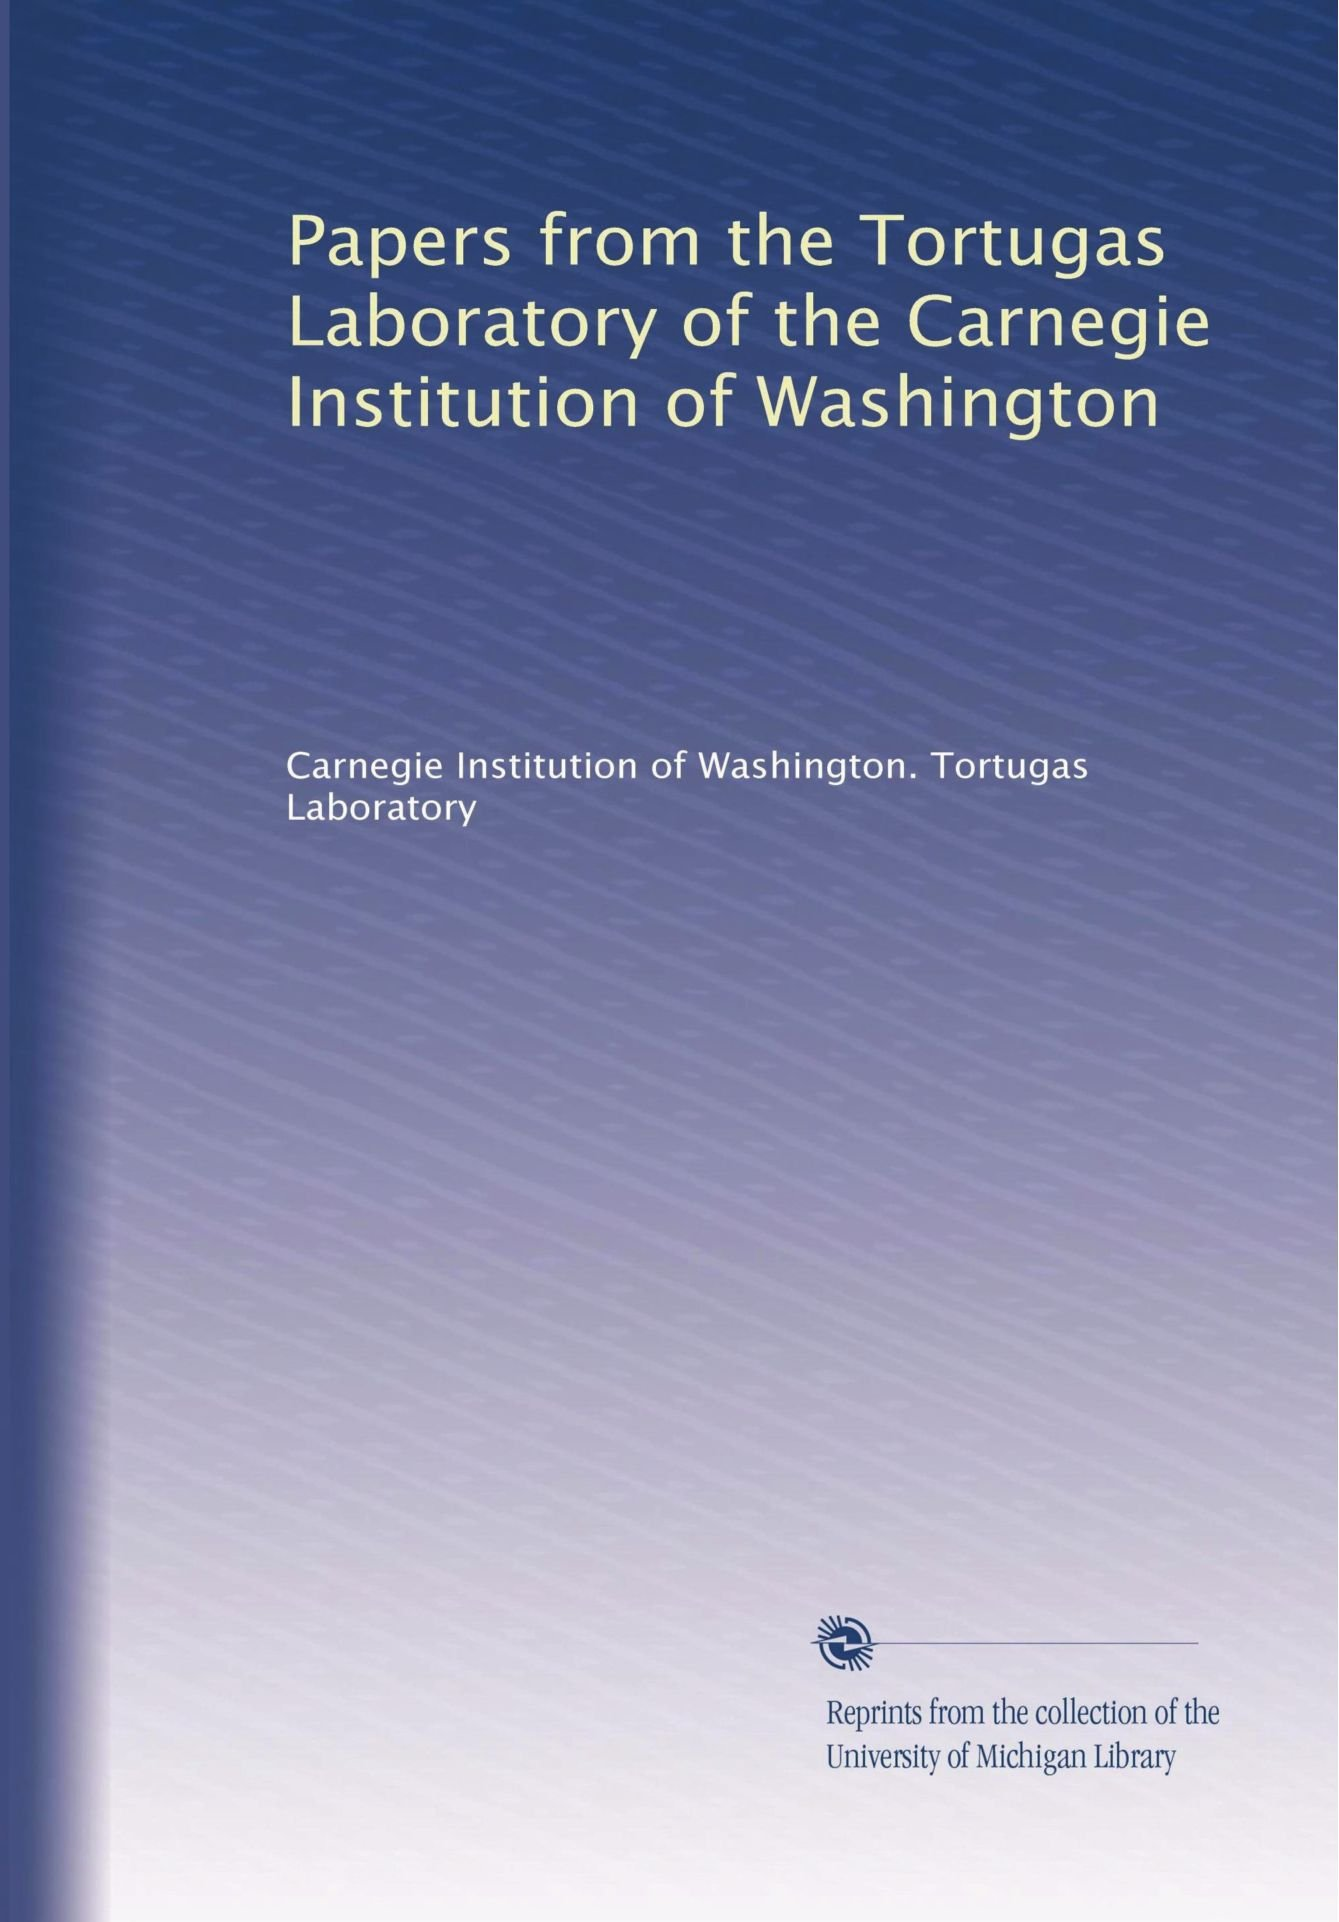 Download Papers from the Tortugas Laboratory of the Carnegie Institution of Washington ebook